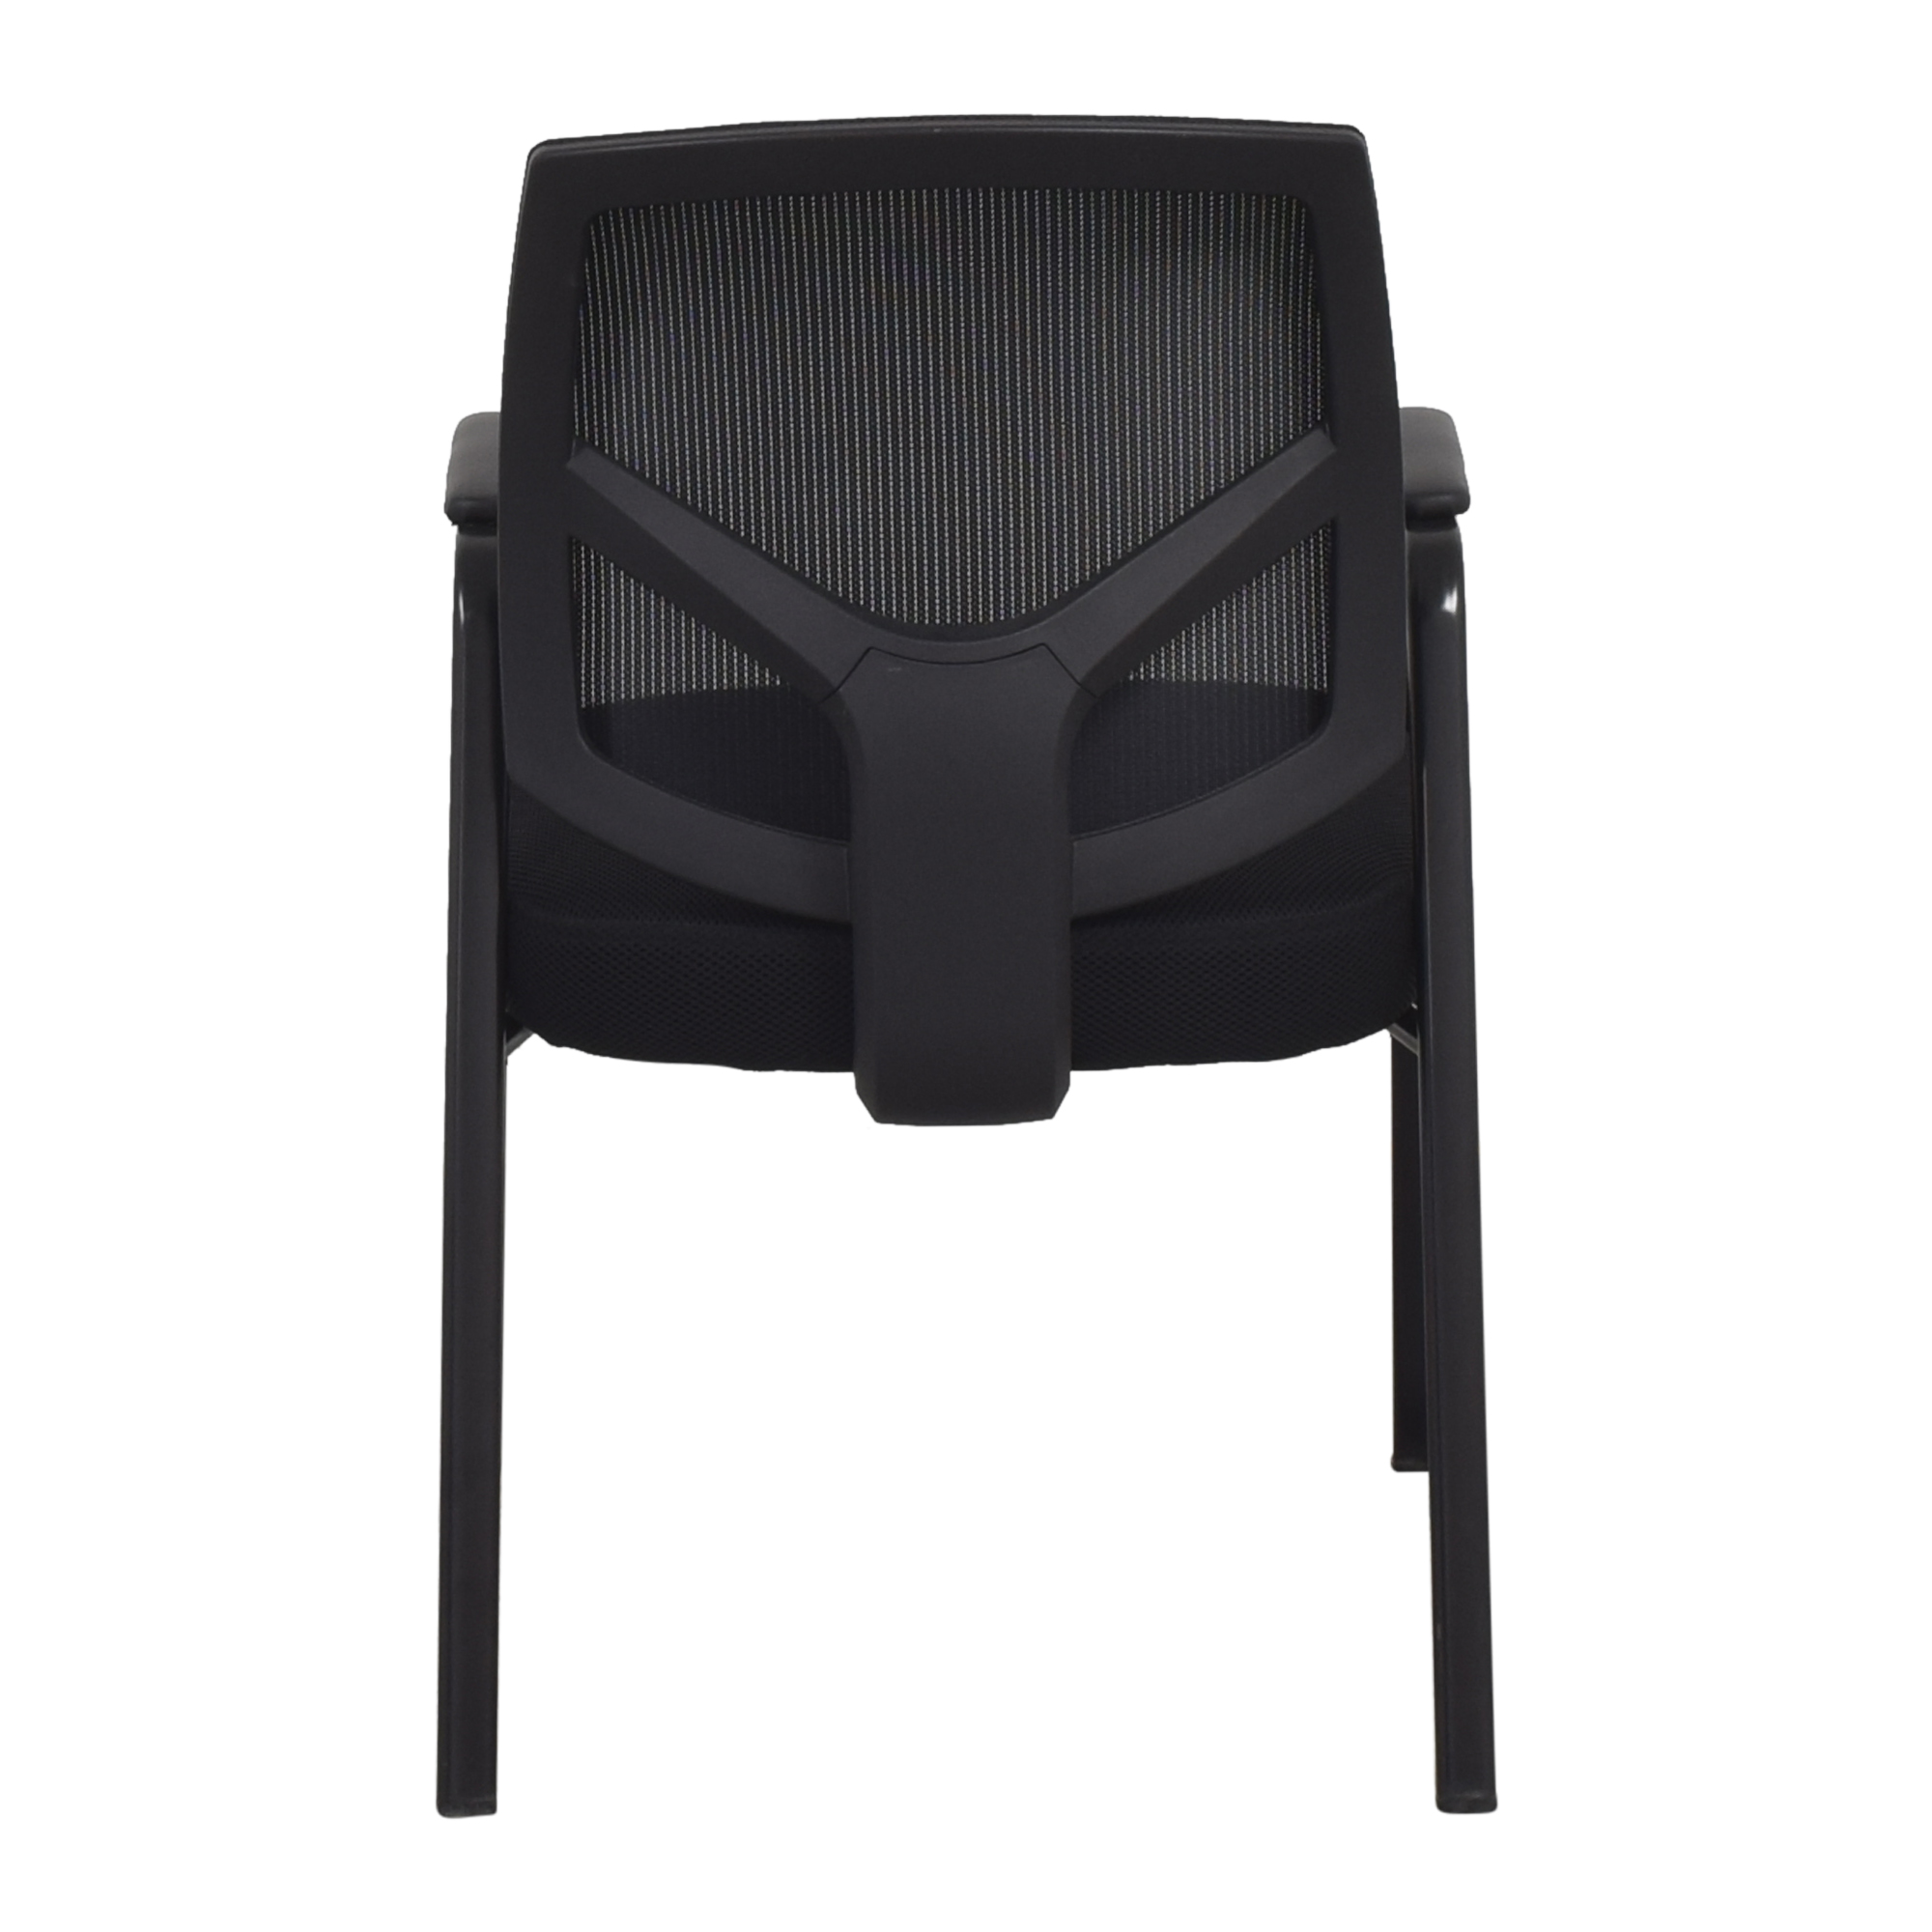 Offices to Go Offices to Go Mesh Back Guest Chair second hand